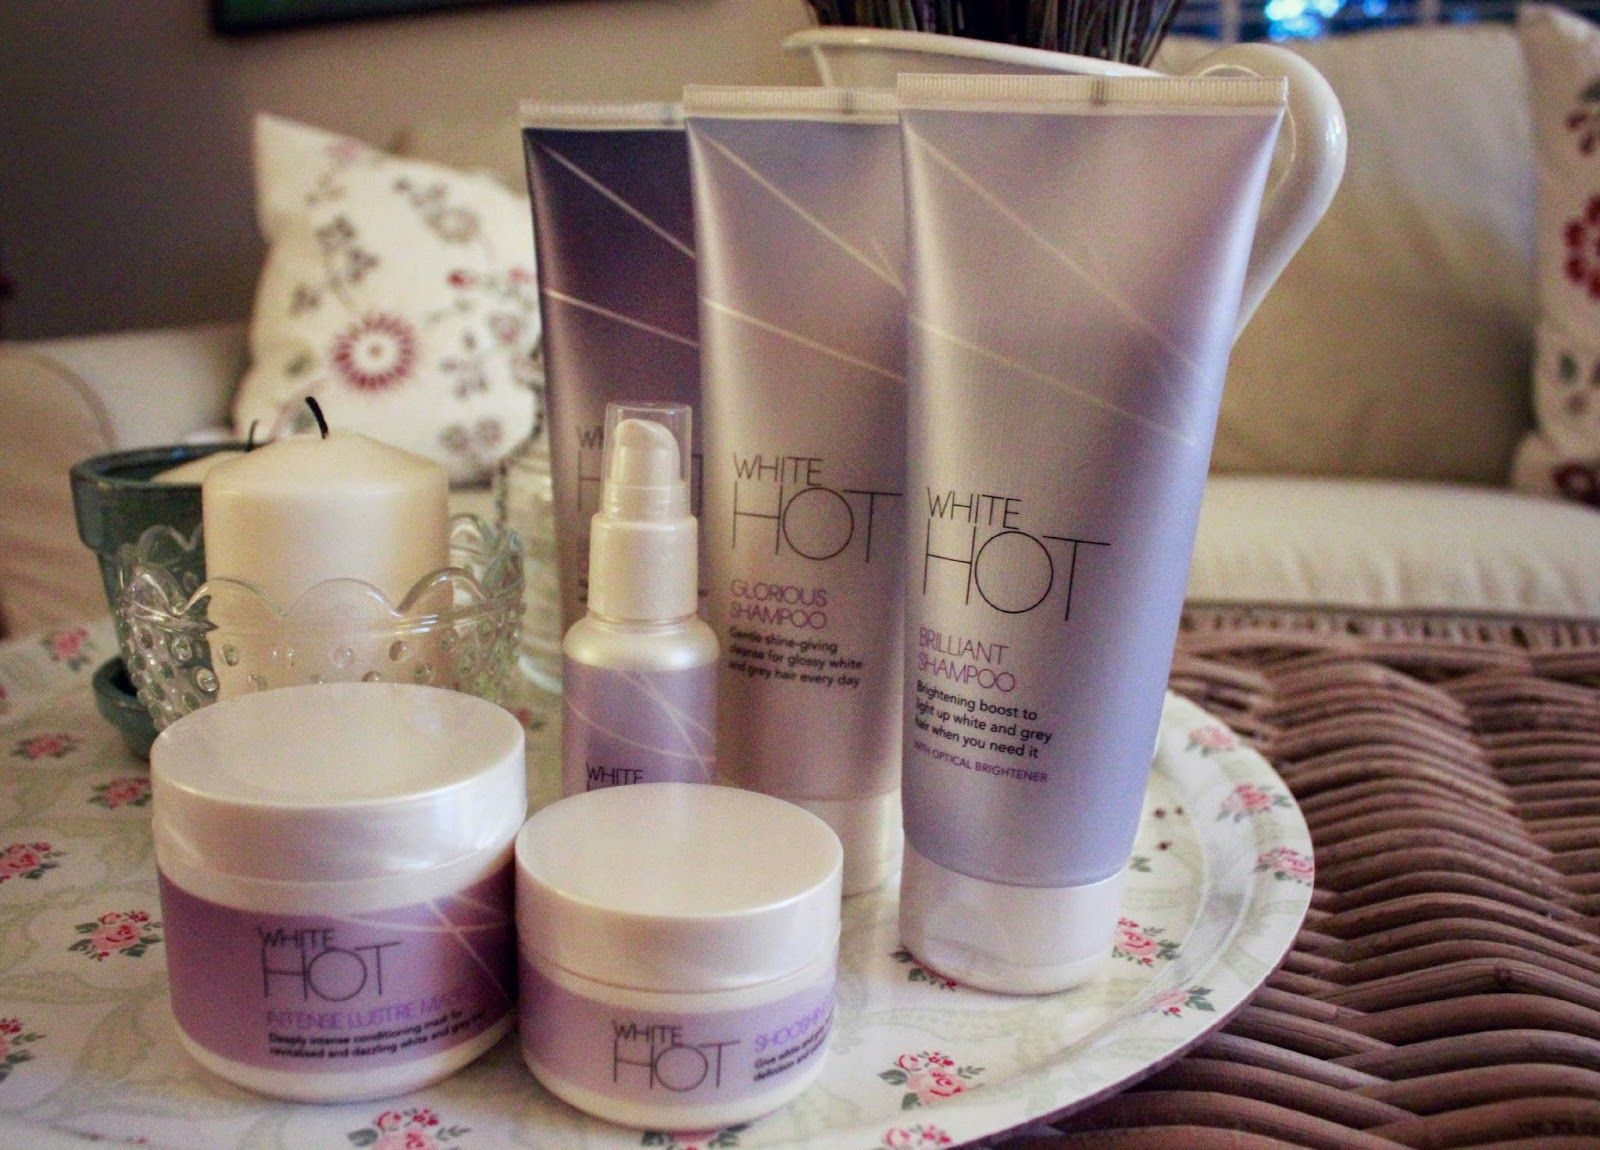 How Bourgeois: White Hot Hair Products, I'm in LOVE!